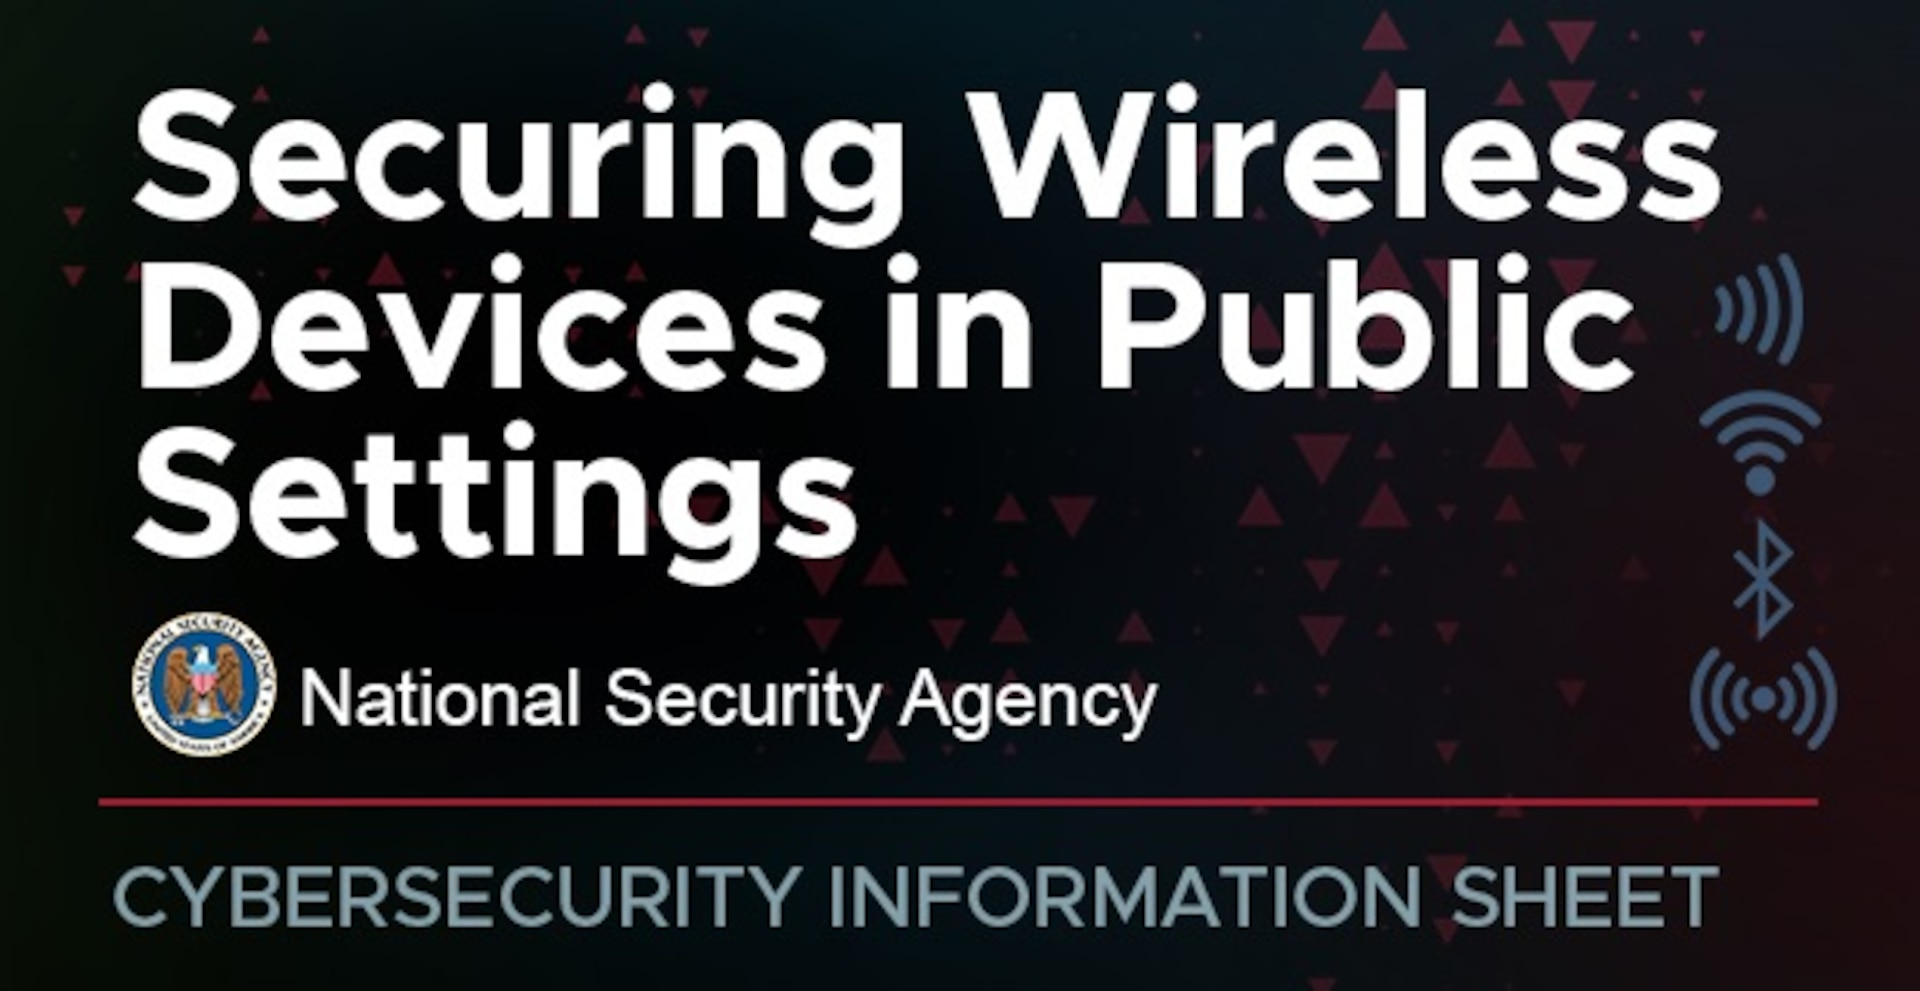 Securing Wireless Devices in Public Settings